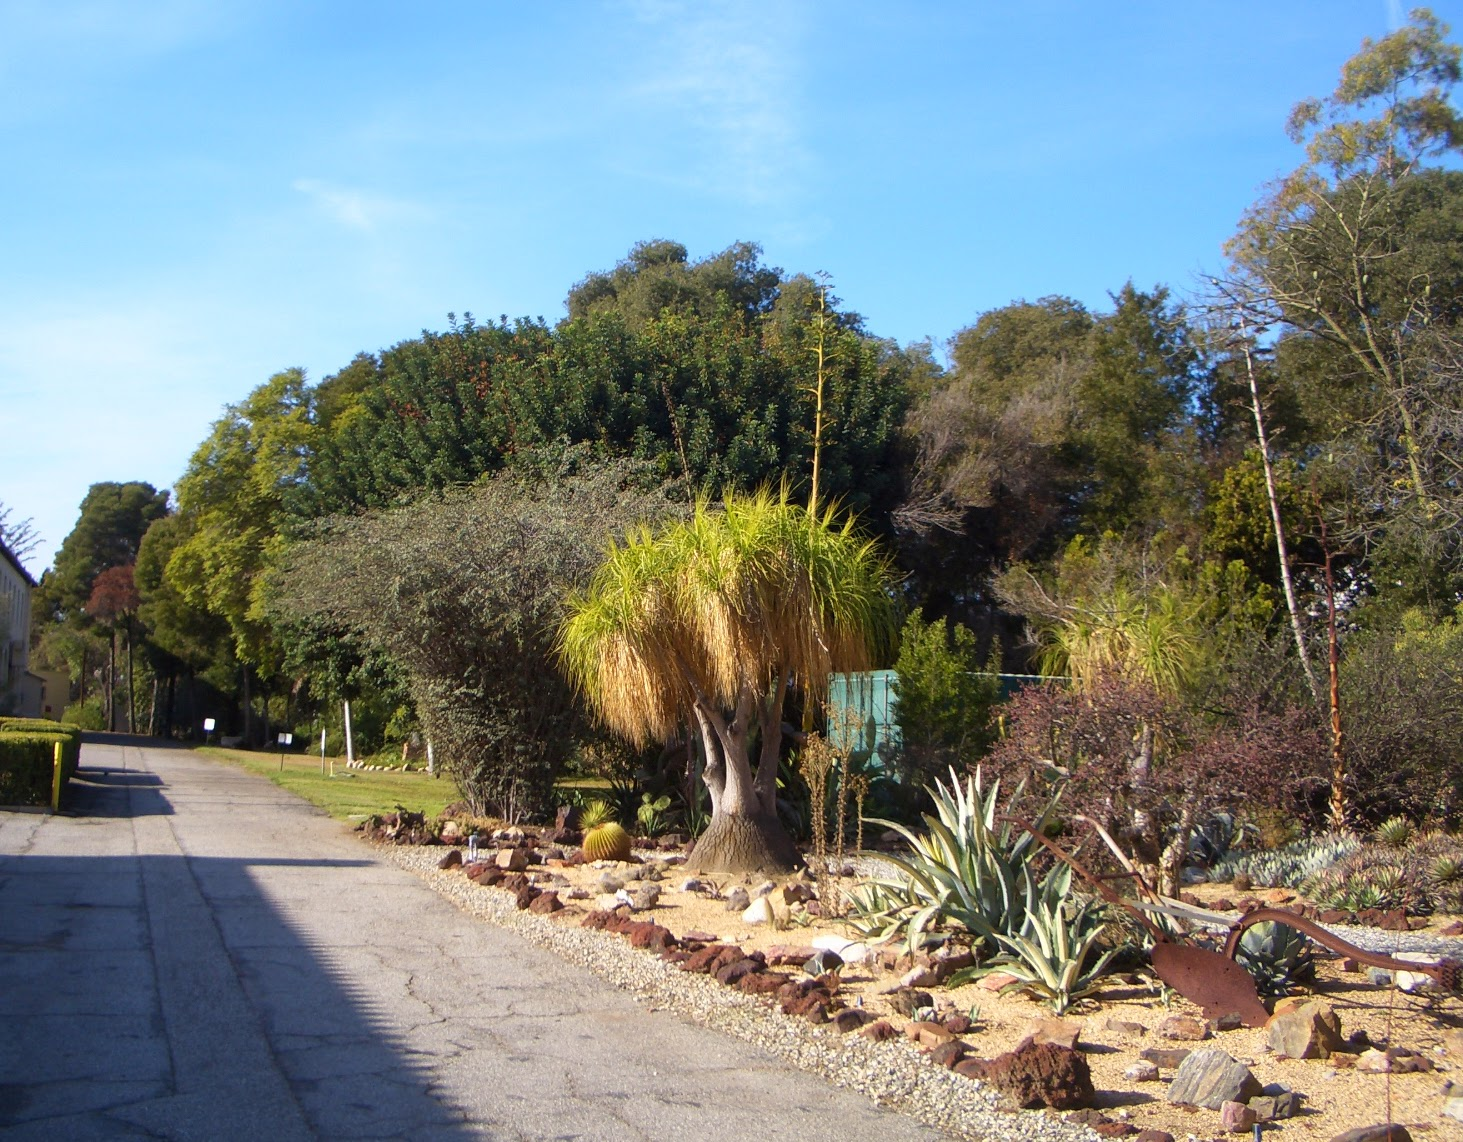 THOUGHTS ON ARCHITECTURE AND URBANISM: Succulents and cactus gardens